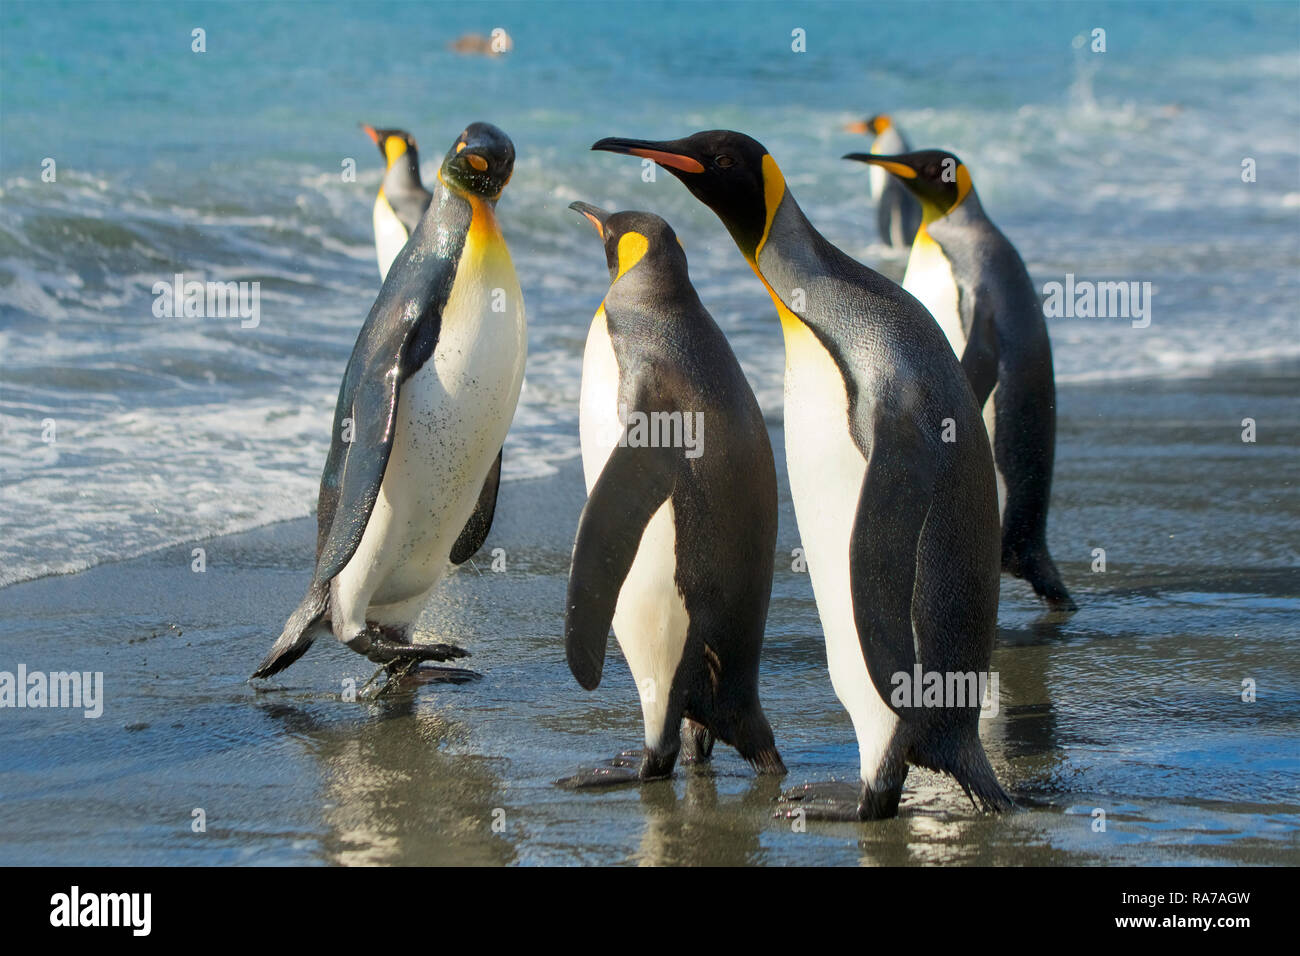 King Penguins in Gold Harbour, South Georgia Stock Photo